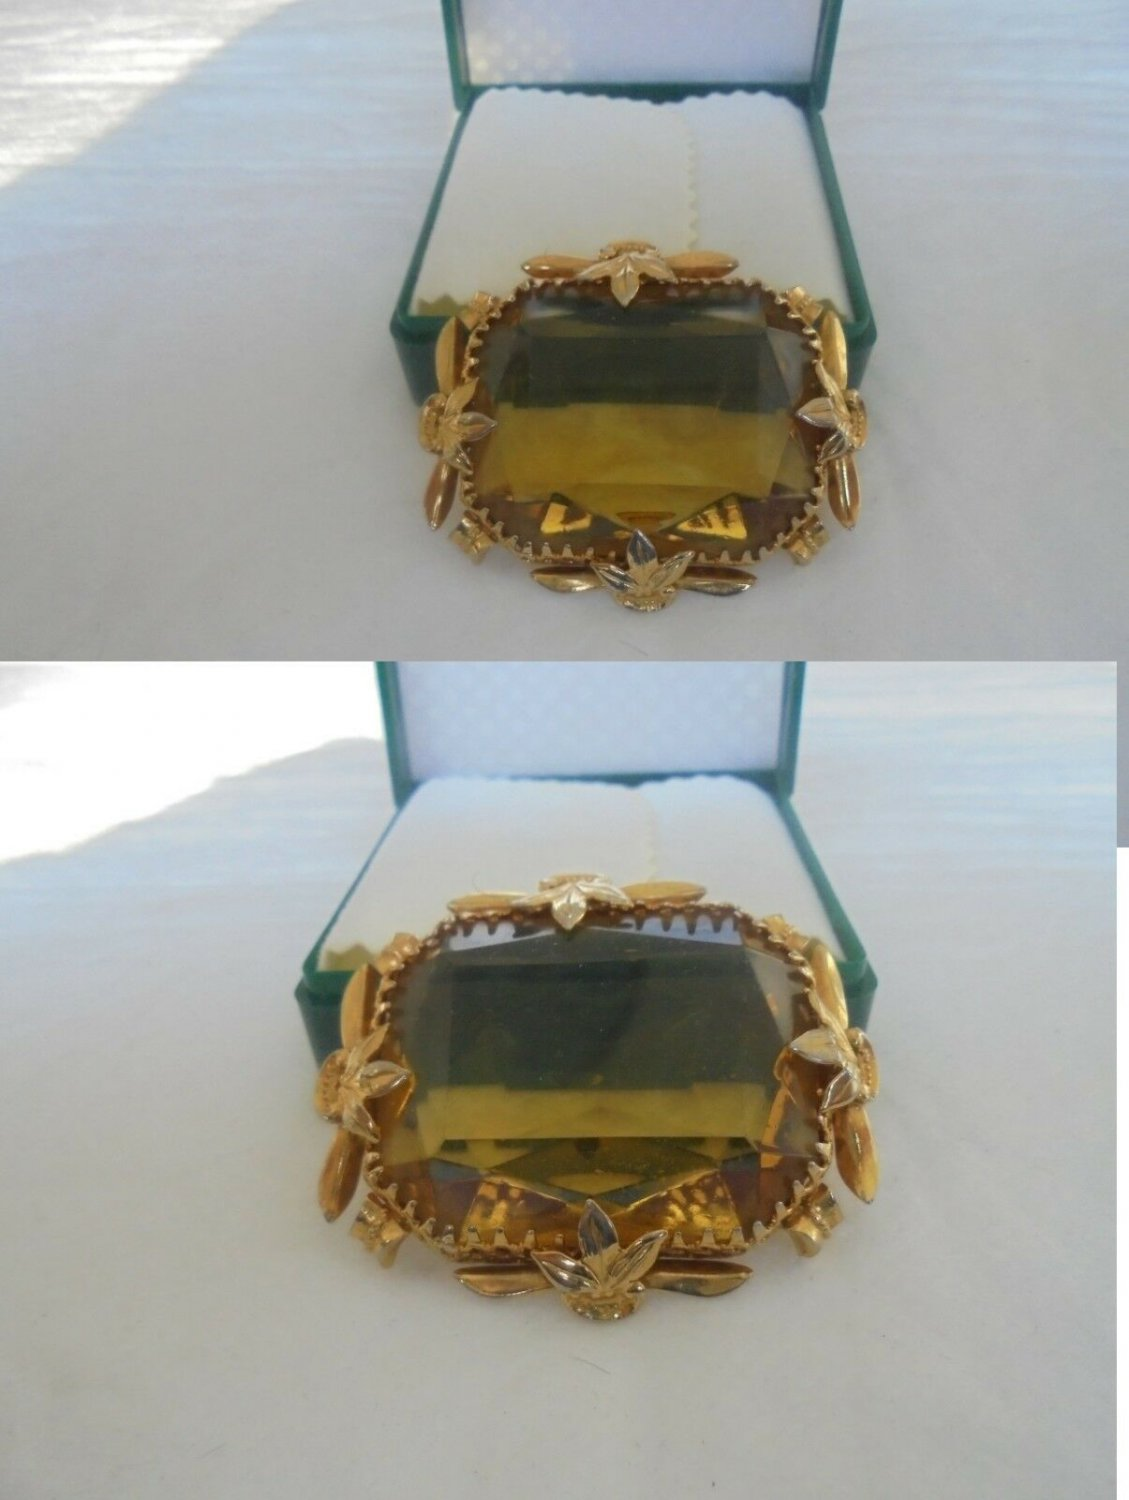 VINTAGE BROOCH PLATED GOLD VICTORIAN STYLE WITH BIG TOPAZ 1960s